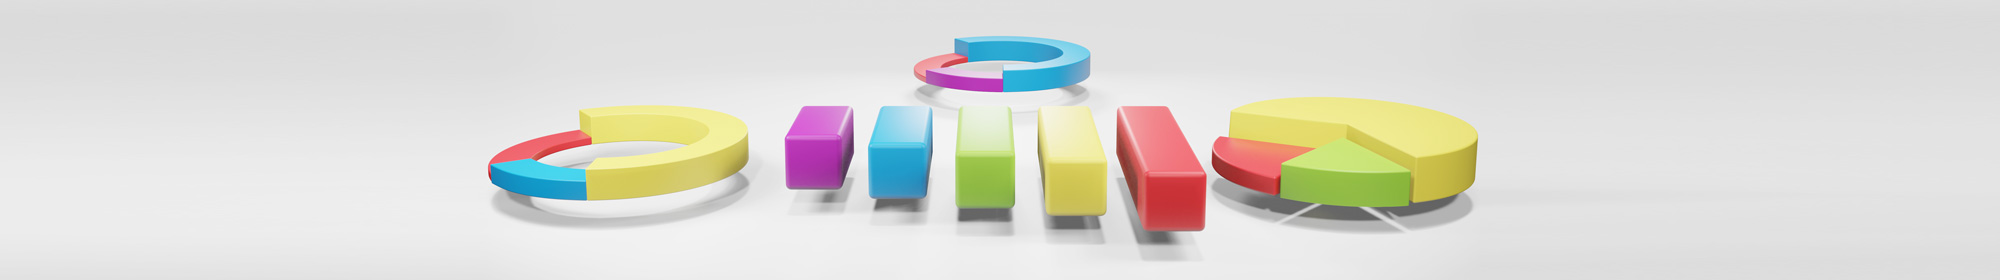 3d blocks of bar and pie charts used for annual reporting